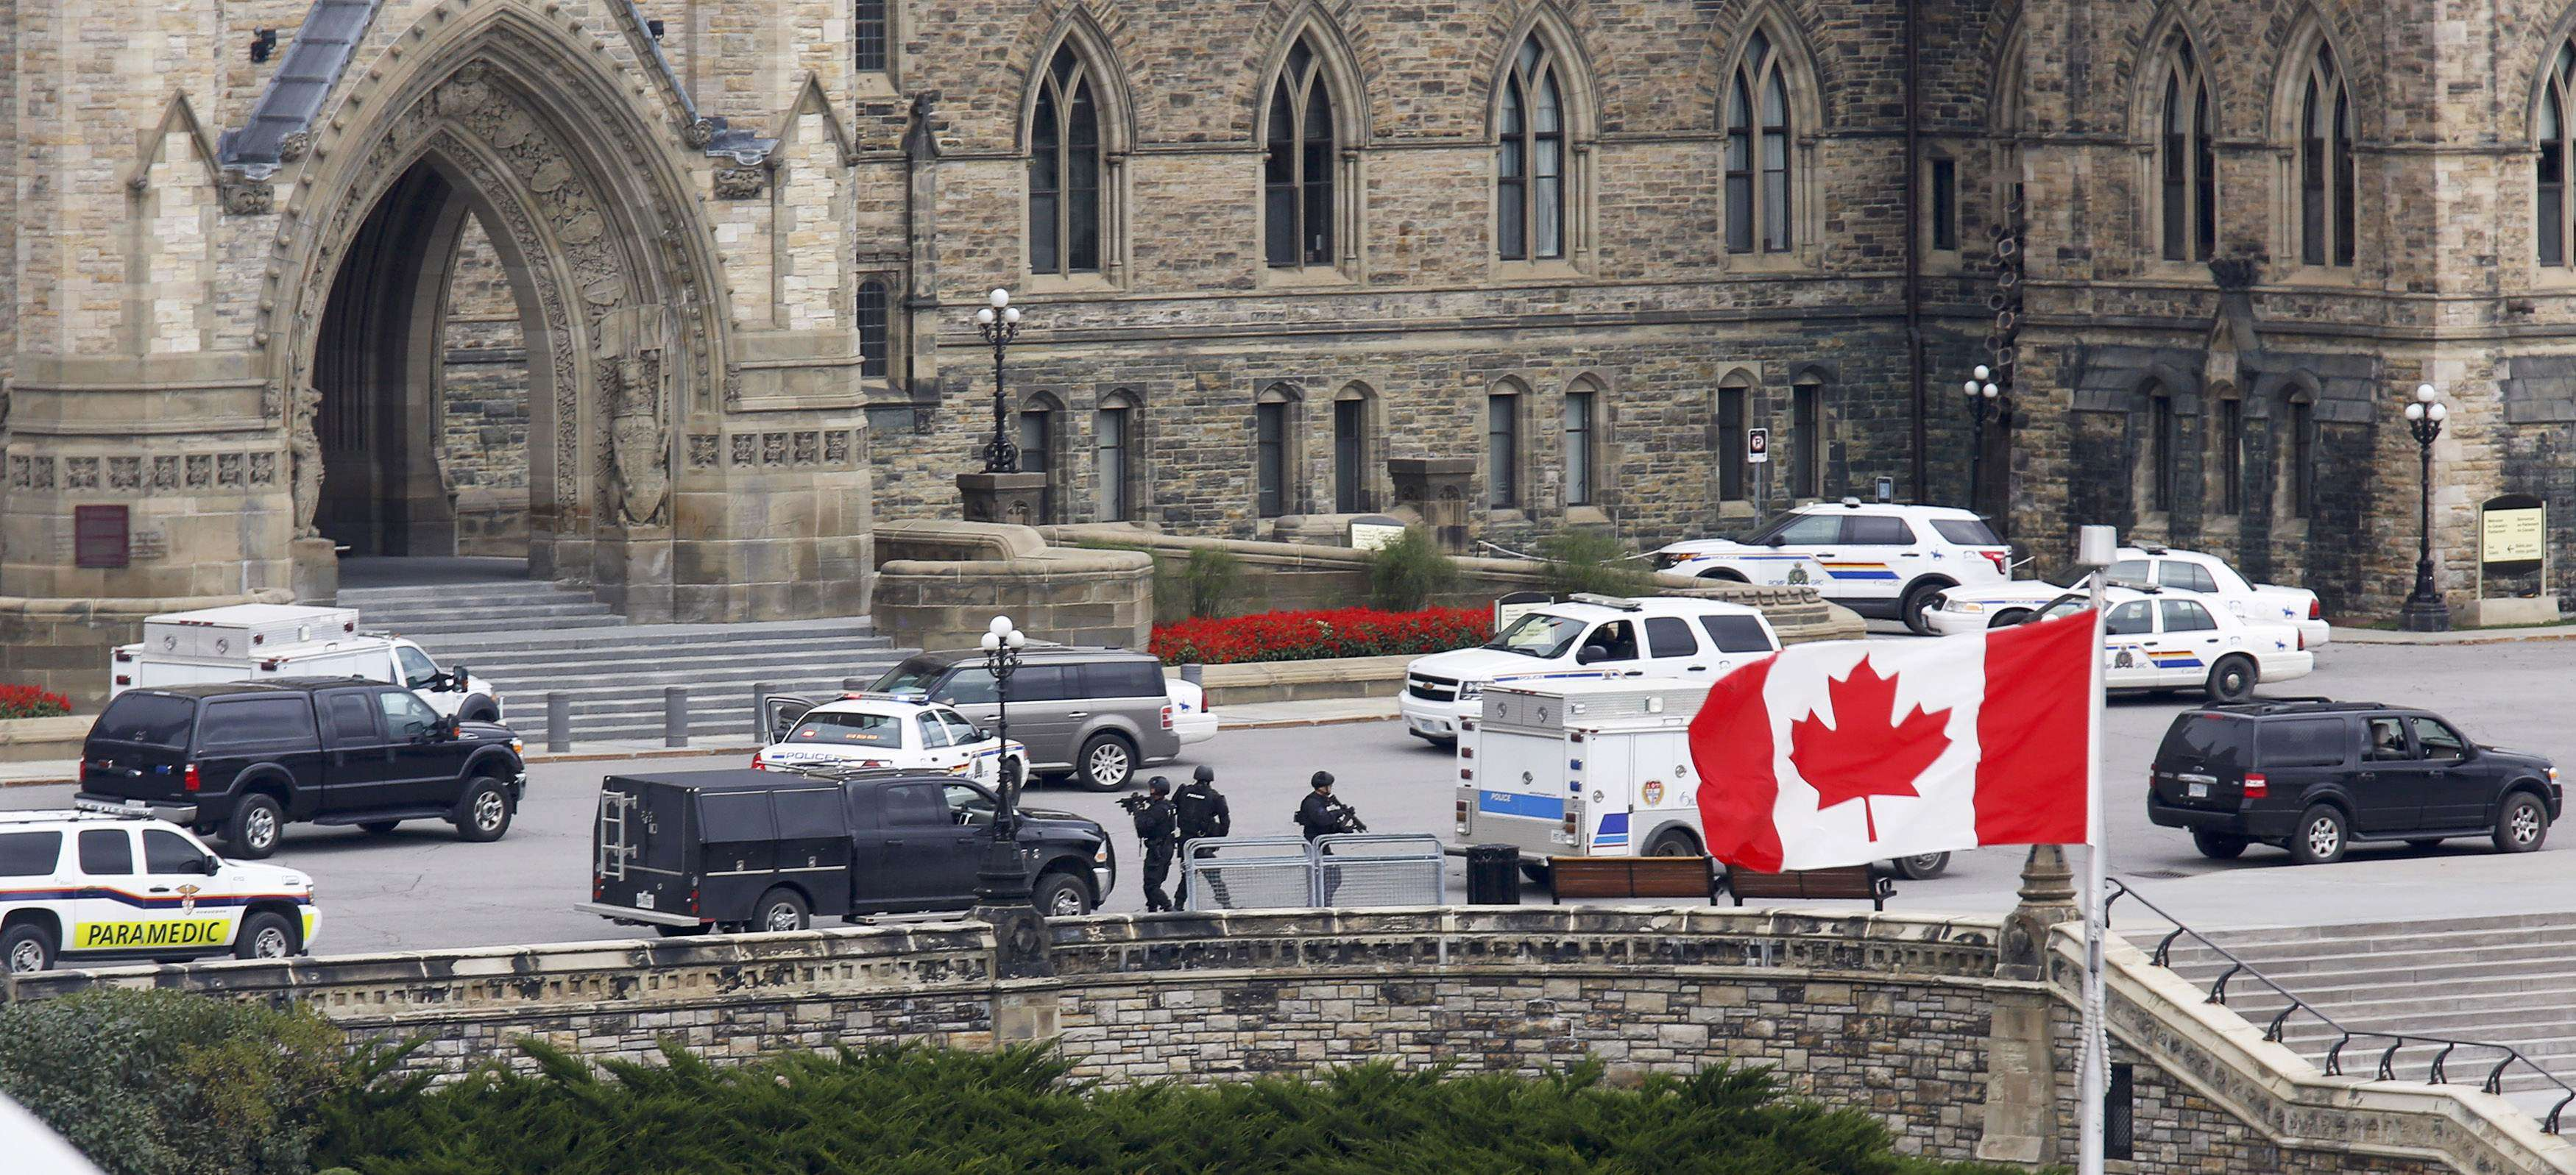 Armed RCMP officers approach Centre Block on Parliament Hilll following a shooting incident in Ottawa October 22, 2014. A Canadian soldier was shot at the Canadian War Memorial and a shooter was seen running towards the nearby parliament buildings, where more shots were fired, according to media and eyewitness reports. REUTERS/Chris Wattie (CANADA - Tags: POLITICS CRIME LAW) Foto: CHRIS WATTIE/REUTERS